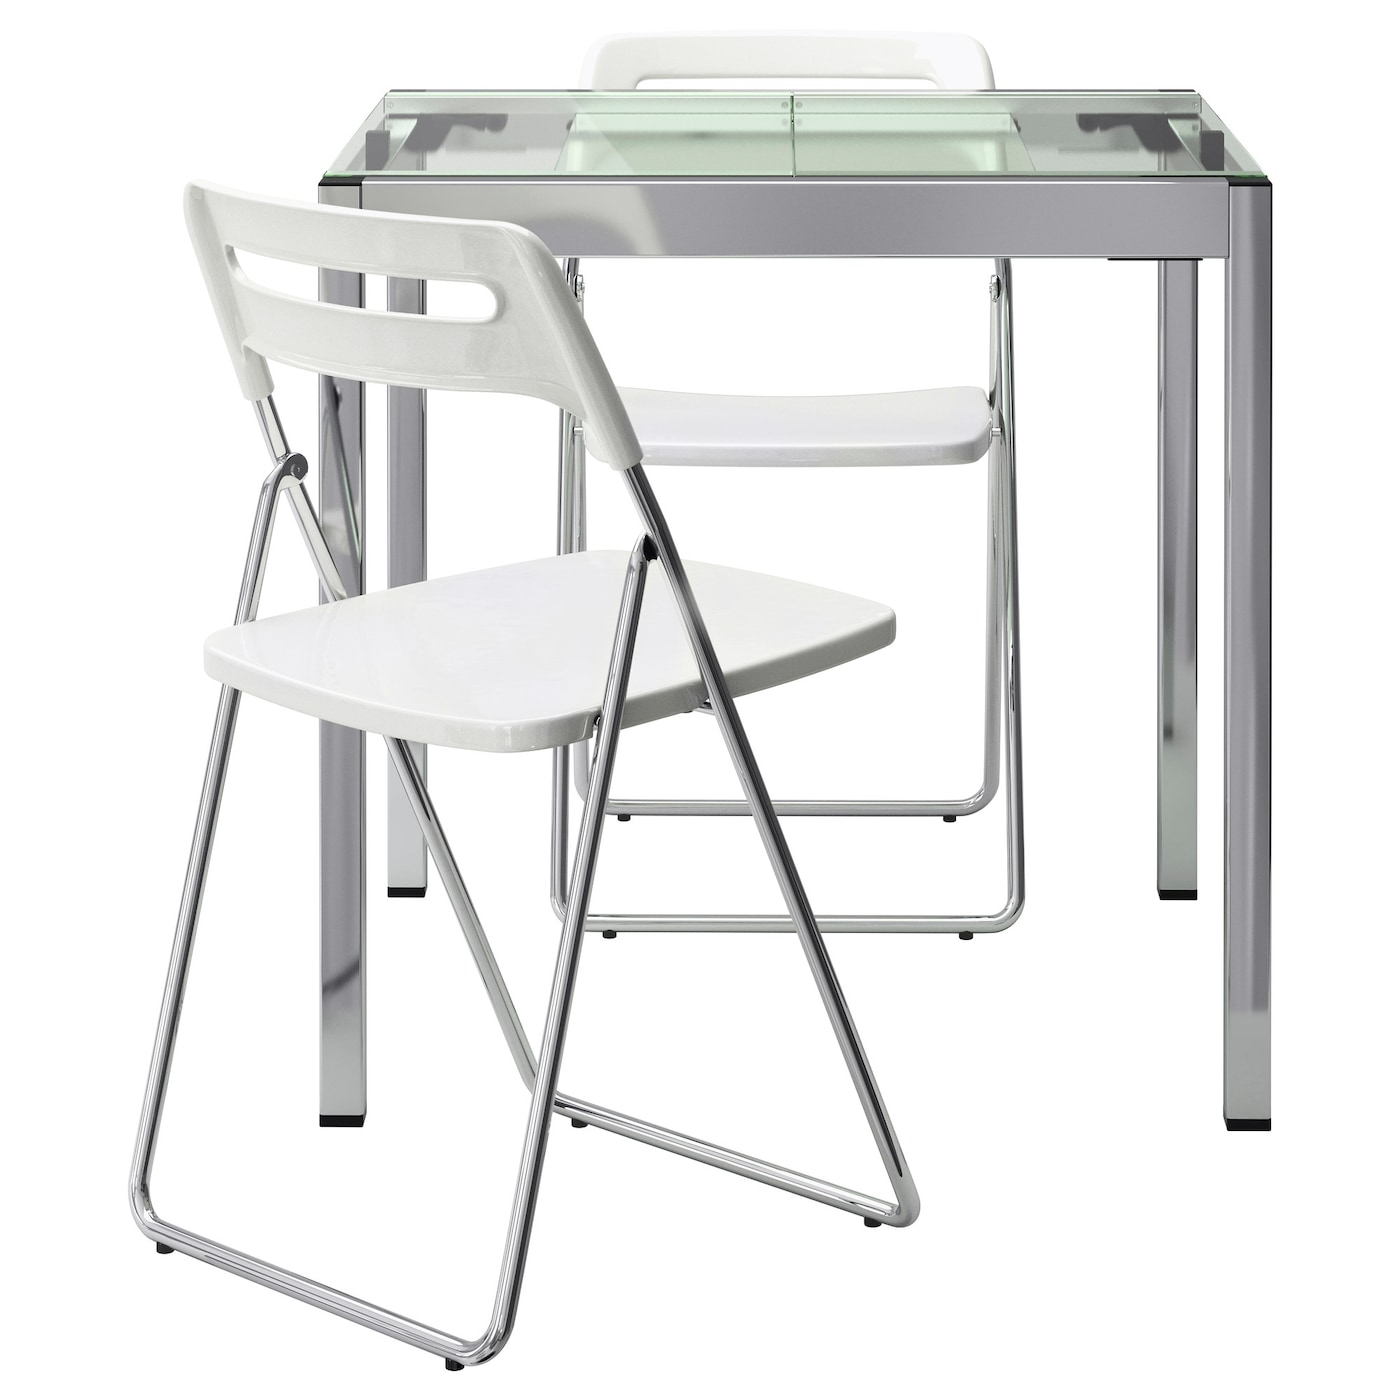 IKEA NISSE/GLIVARP table and 2 chairs It is easy for one person alone to extend the table.